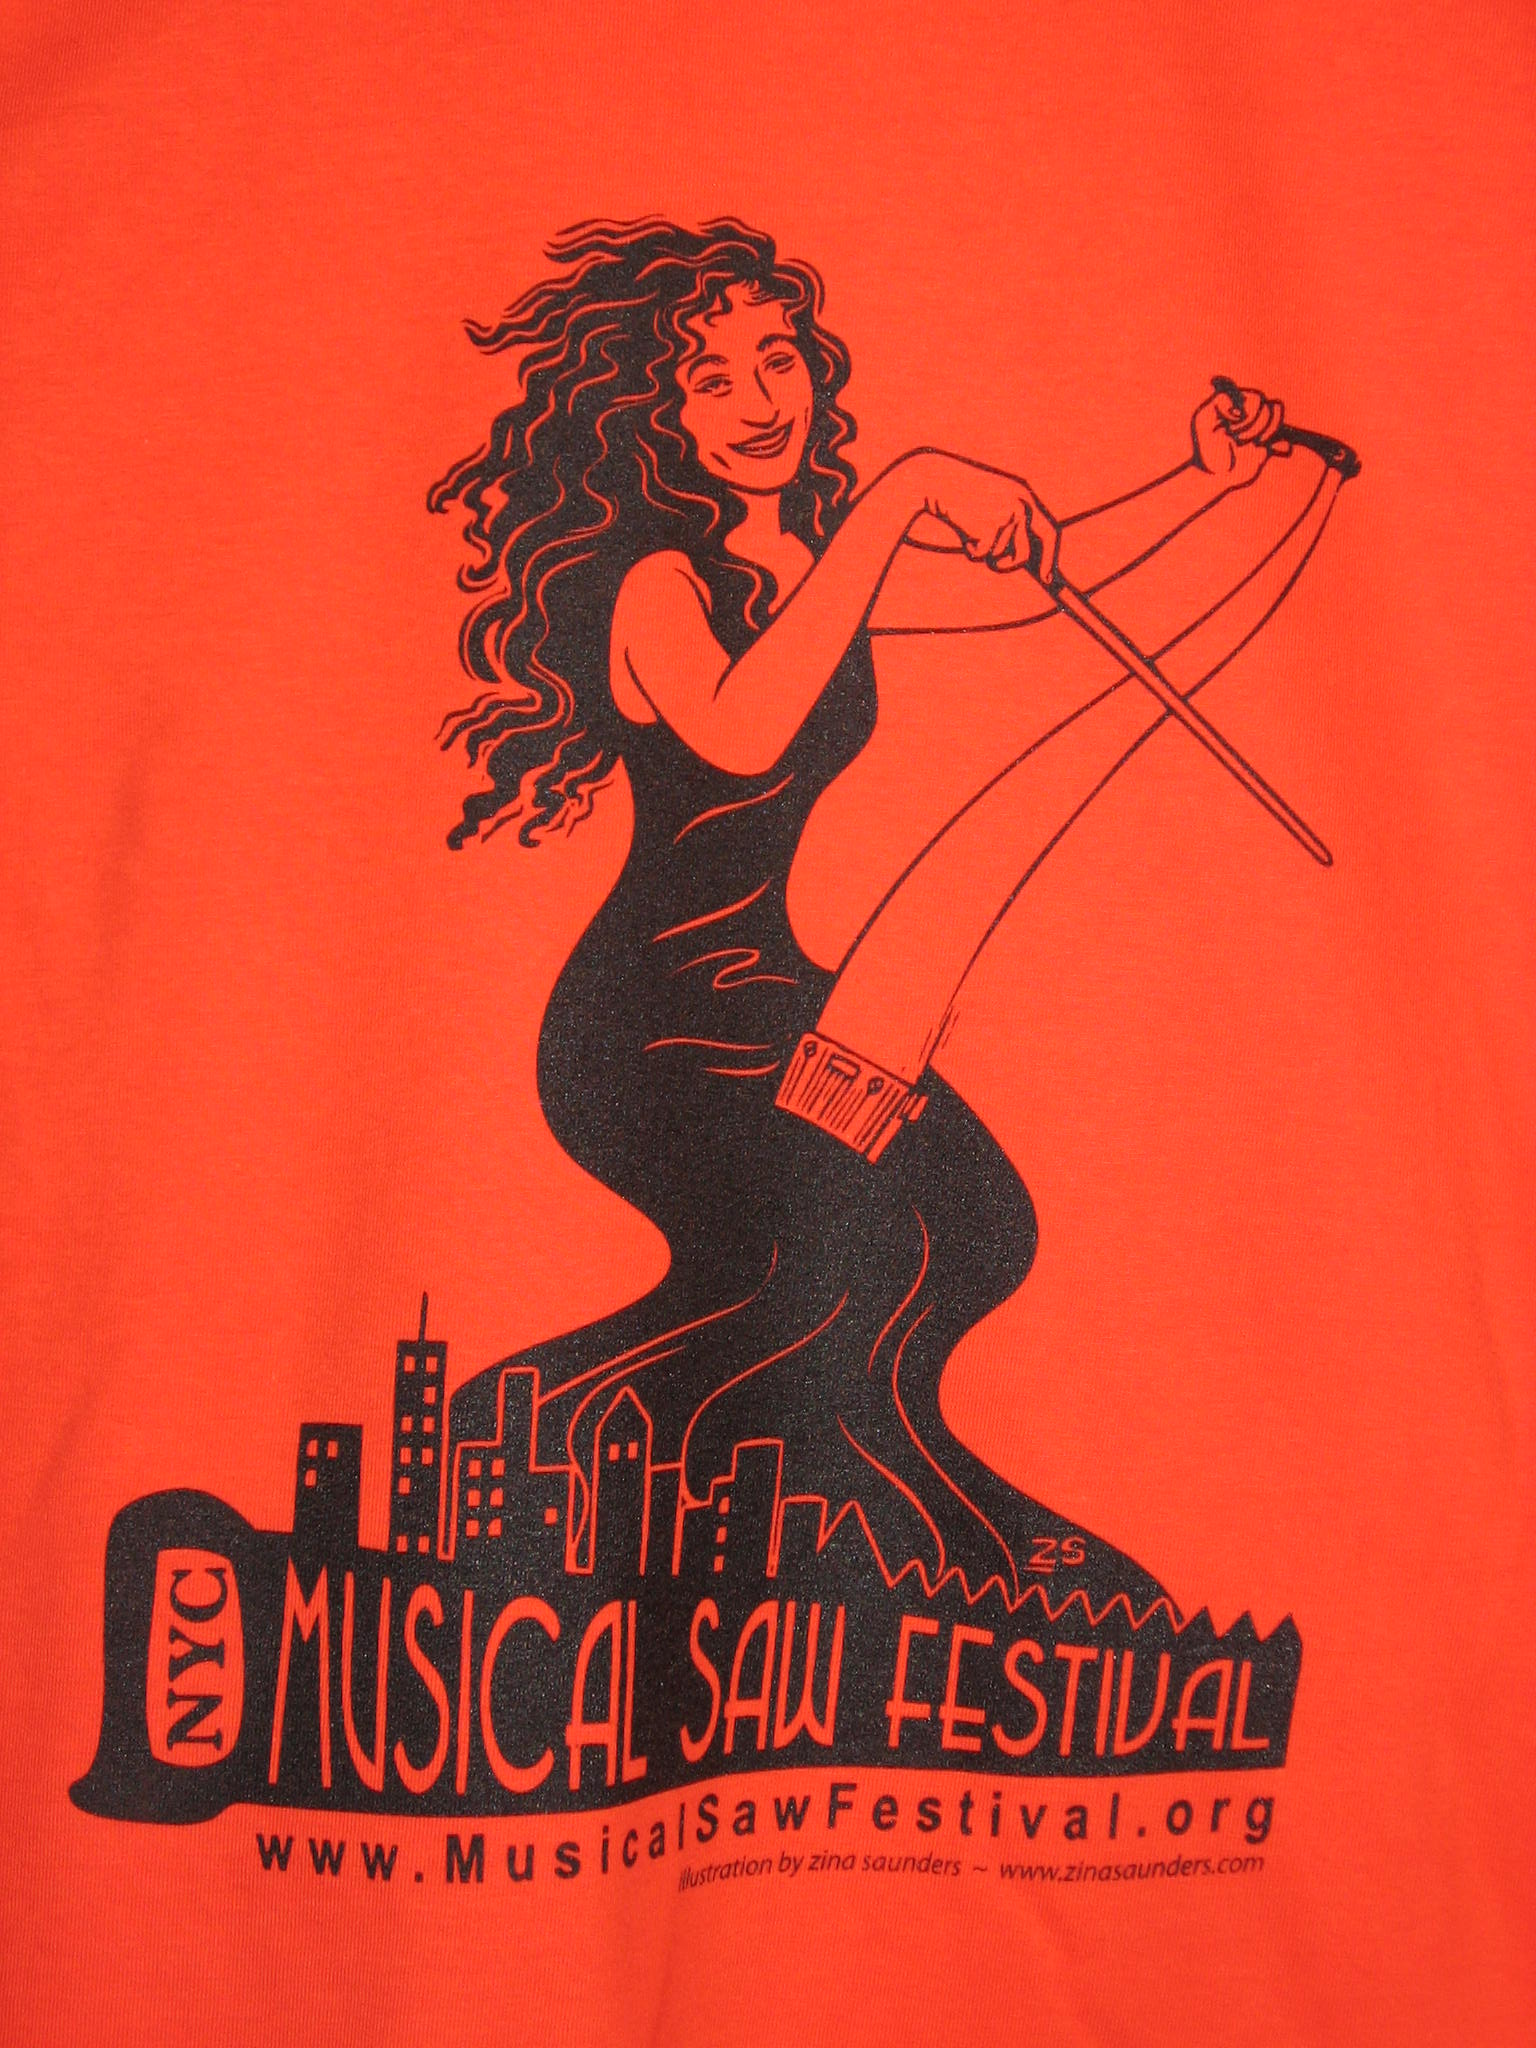 NYC Musical Saw Festival T-shirt